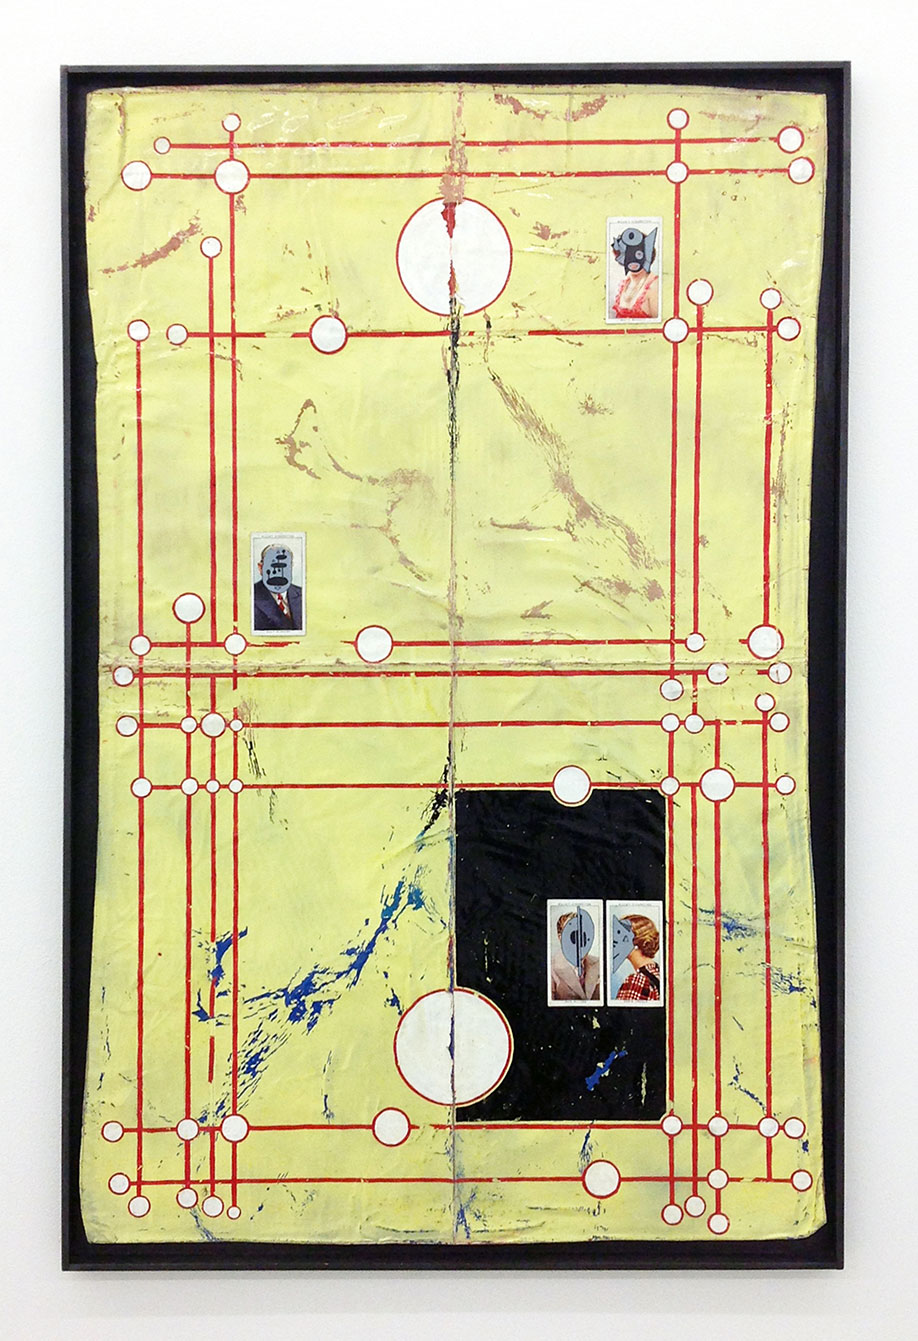 <b>Title: </b>JOURNEYS END<br /><b>Year: </b>2019<br /><b>Medium: </b>enamel, acrylic, varnish, ink and cigarette cards in graphite and pine frame<br /><b>Size: </b>76.5 x 50 x 2cm